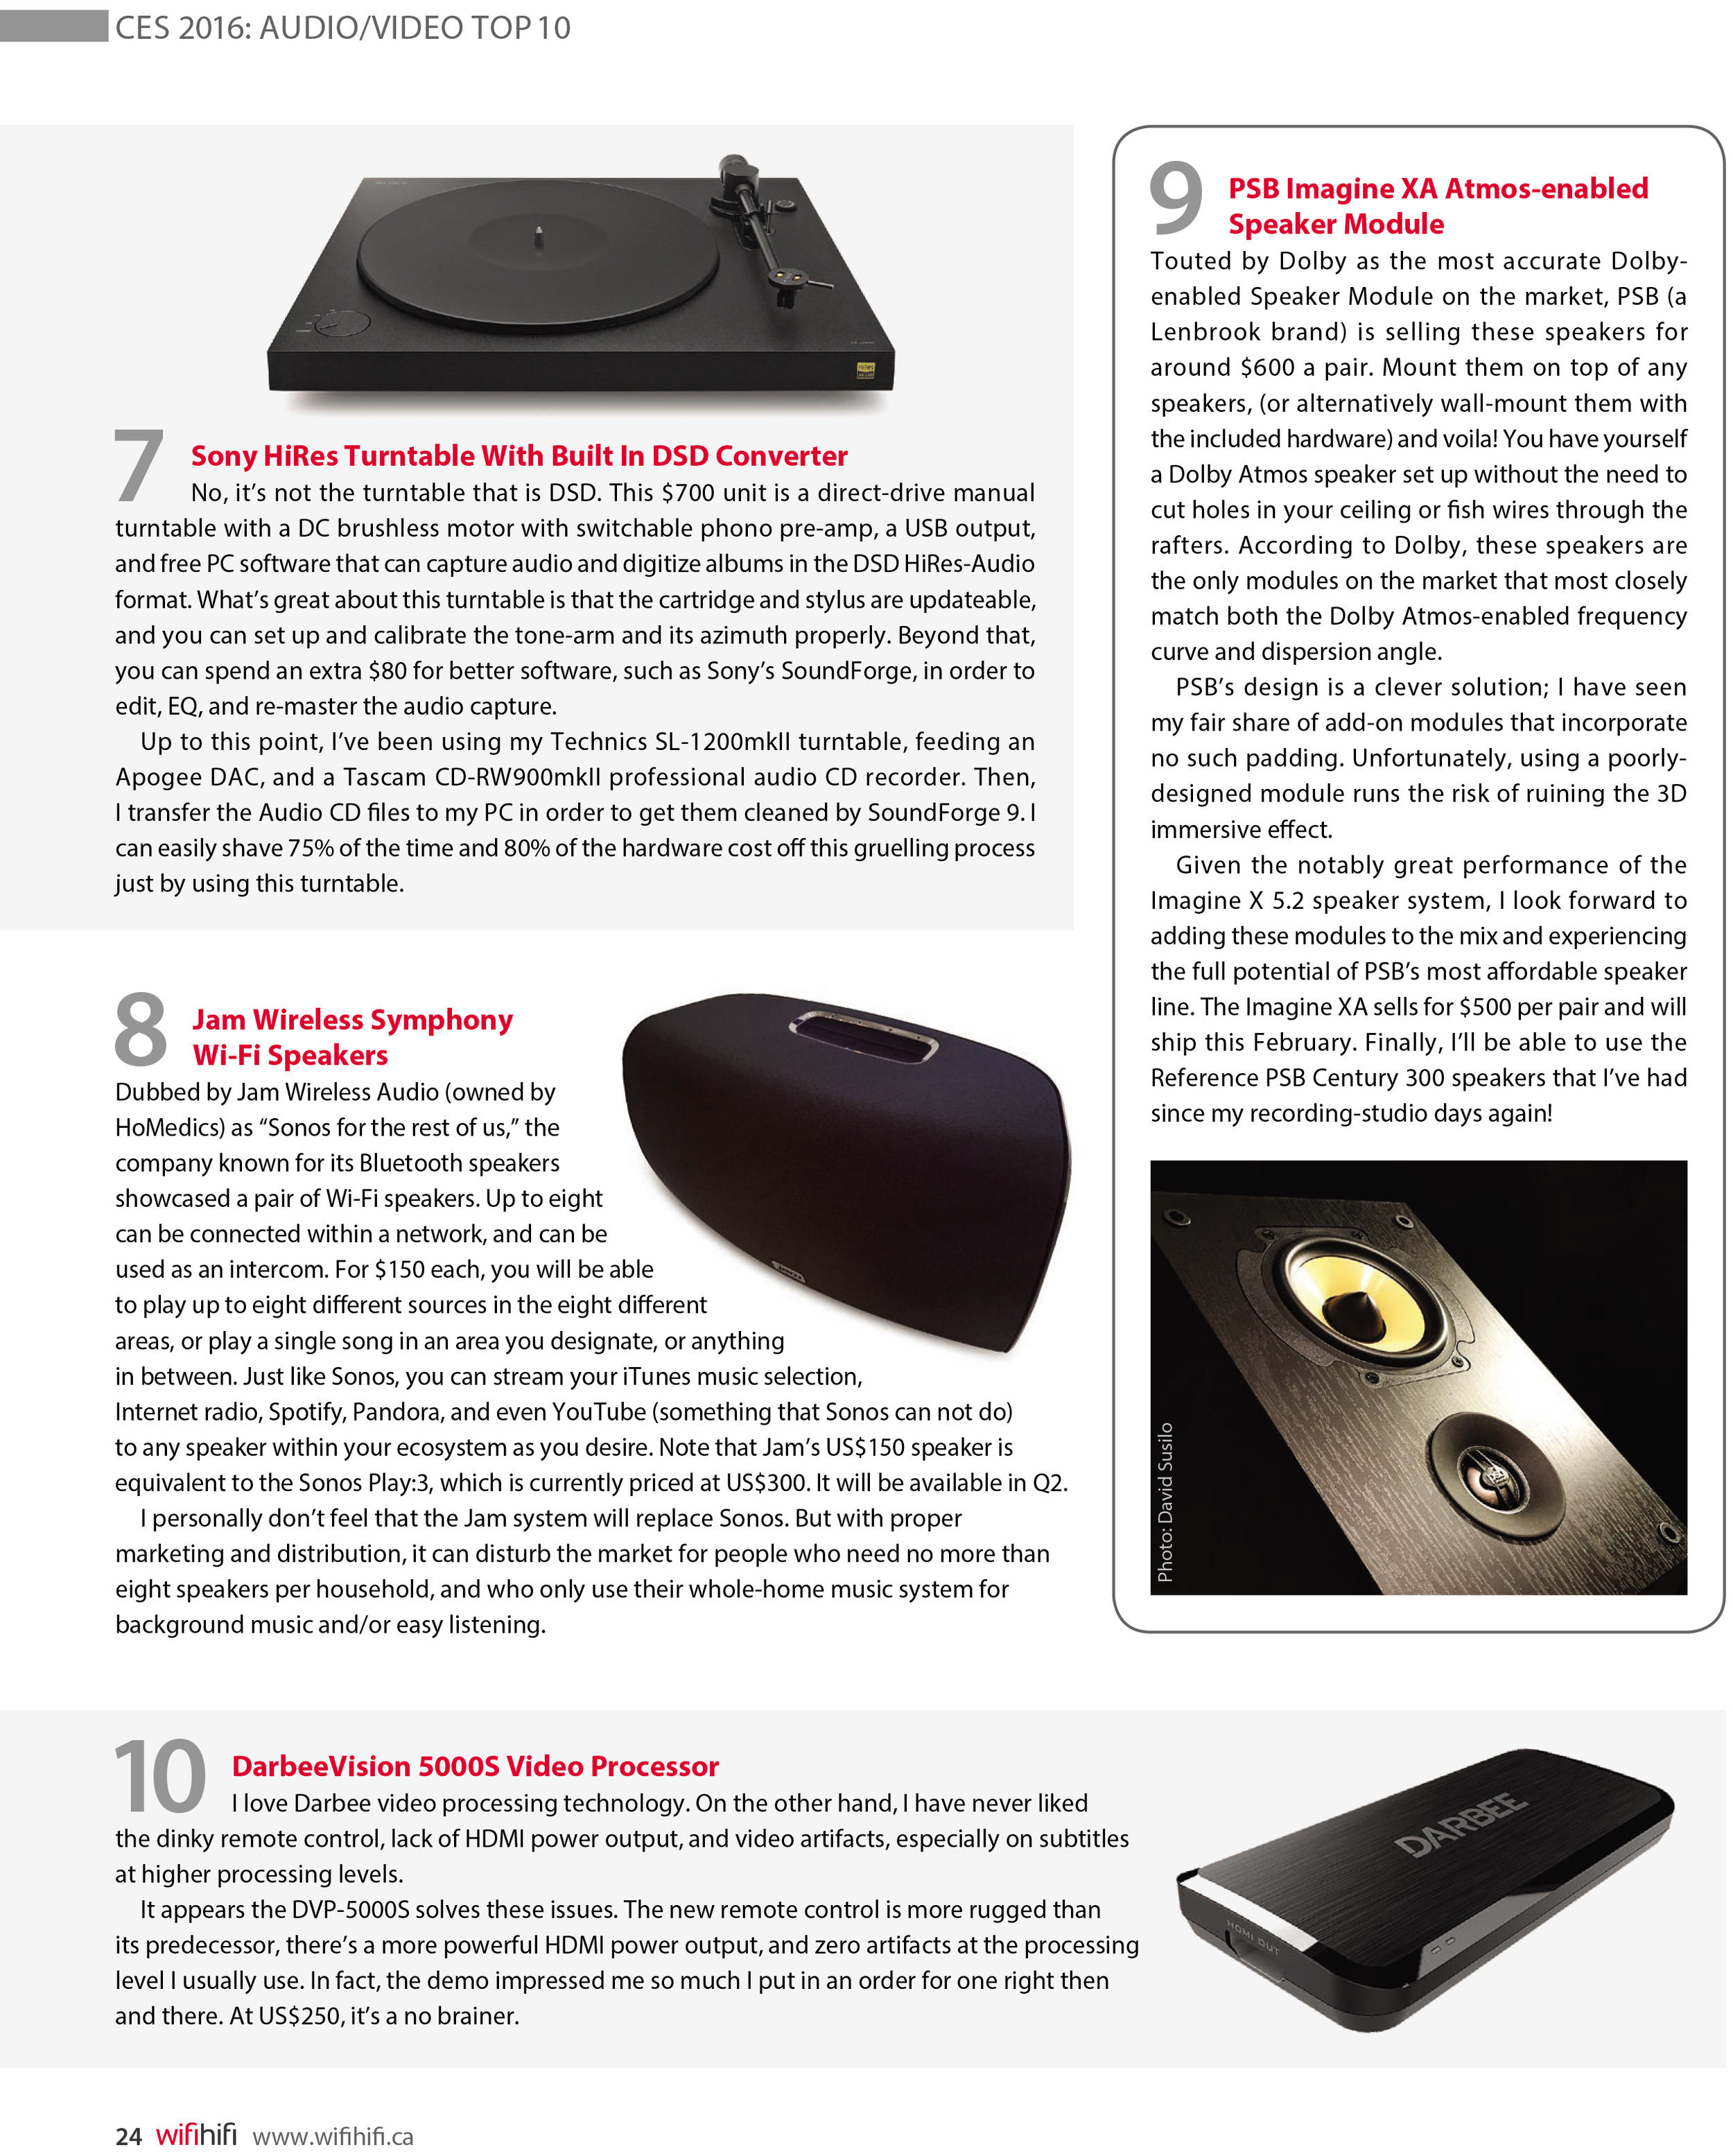 WiFi HiFi_Feb-Mar 2016_AV Top 10-3.jpg